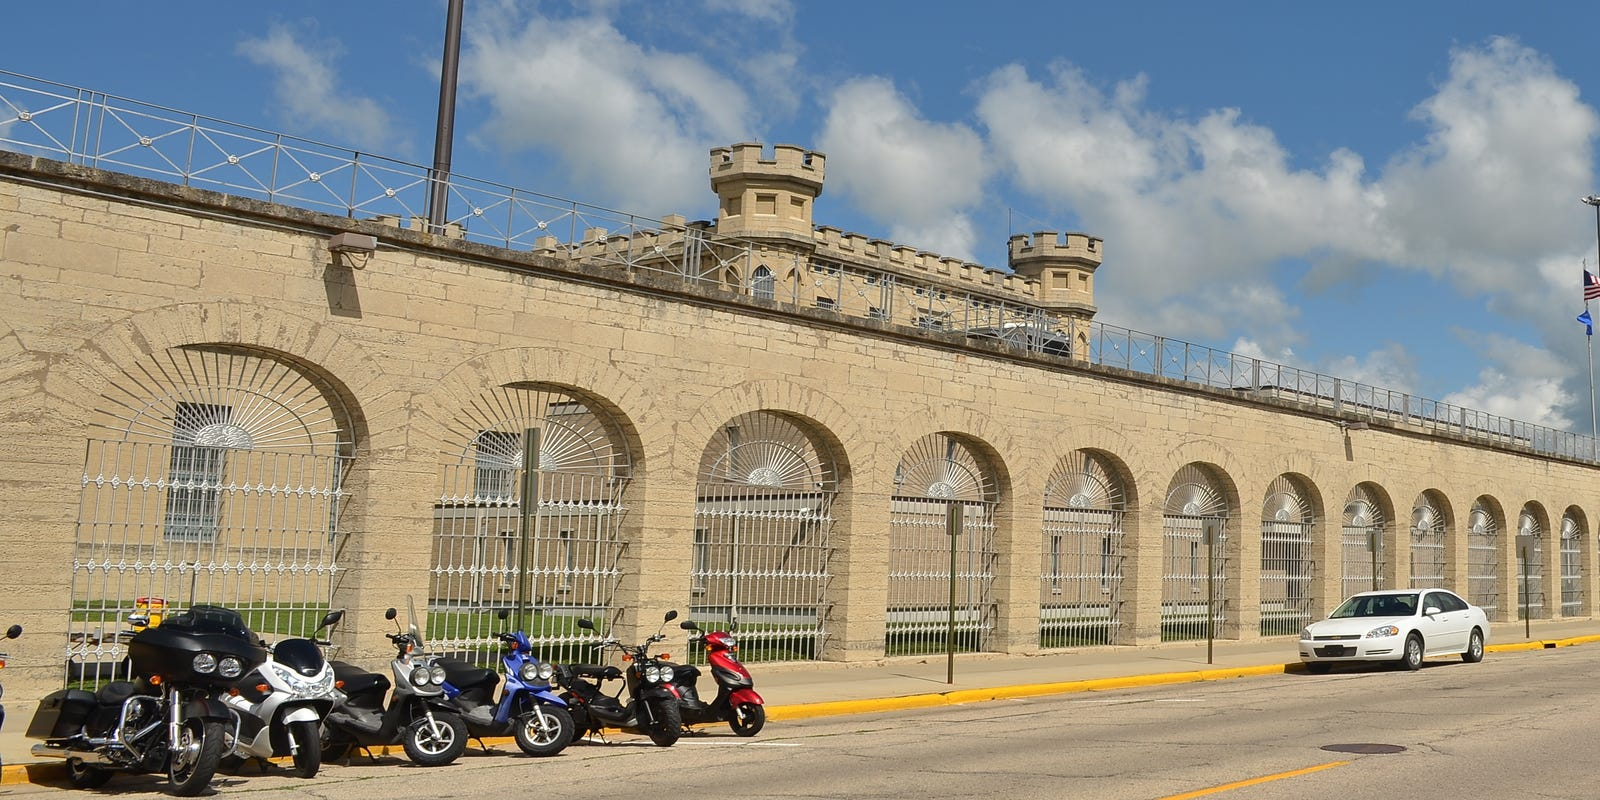 Ever wonder what a maximum-security prison is like? Read on